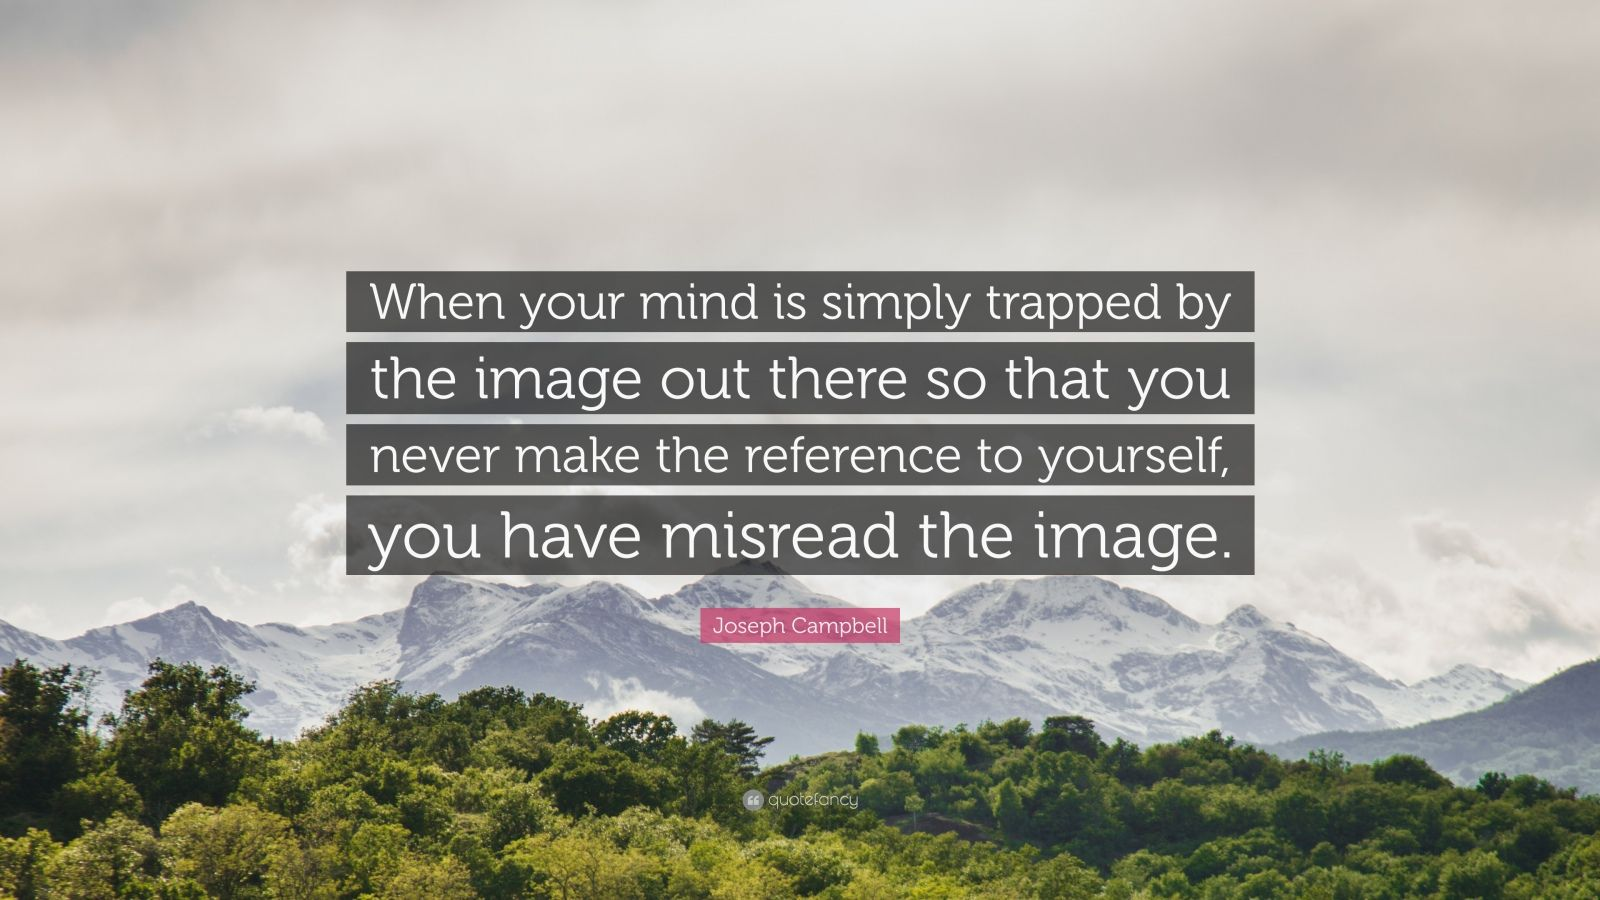 """Joseph Campbell Quote: """"When your mind is simply trapped by the image out there so that you never make the reference to yourself, you have misread the image."""""""